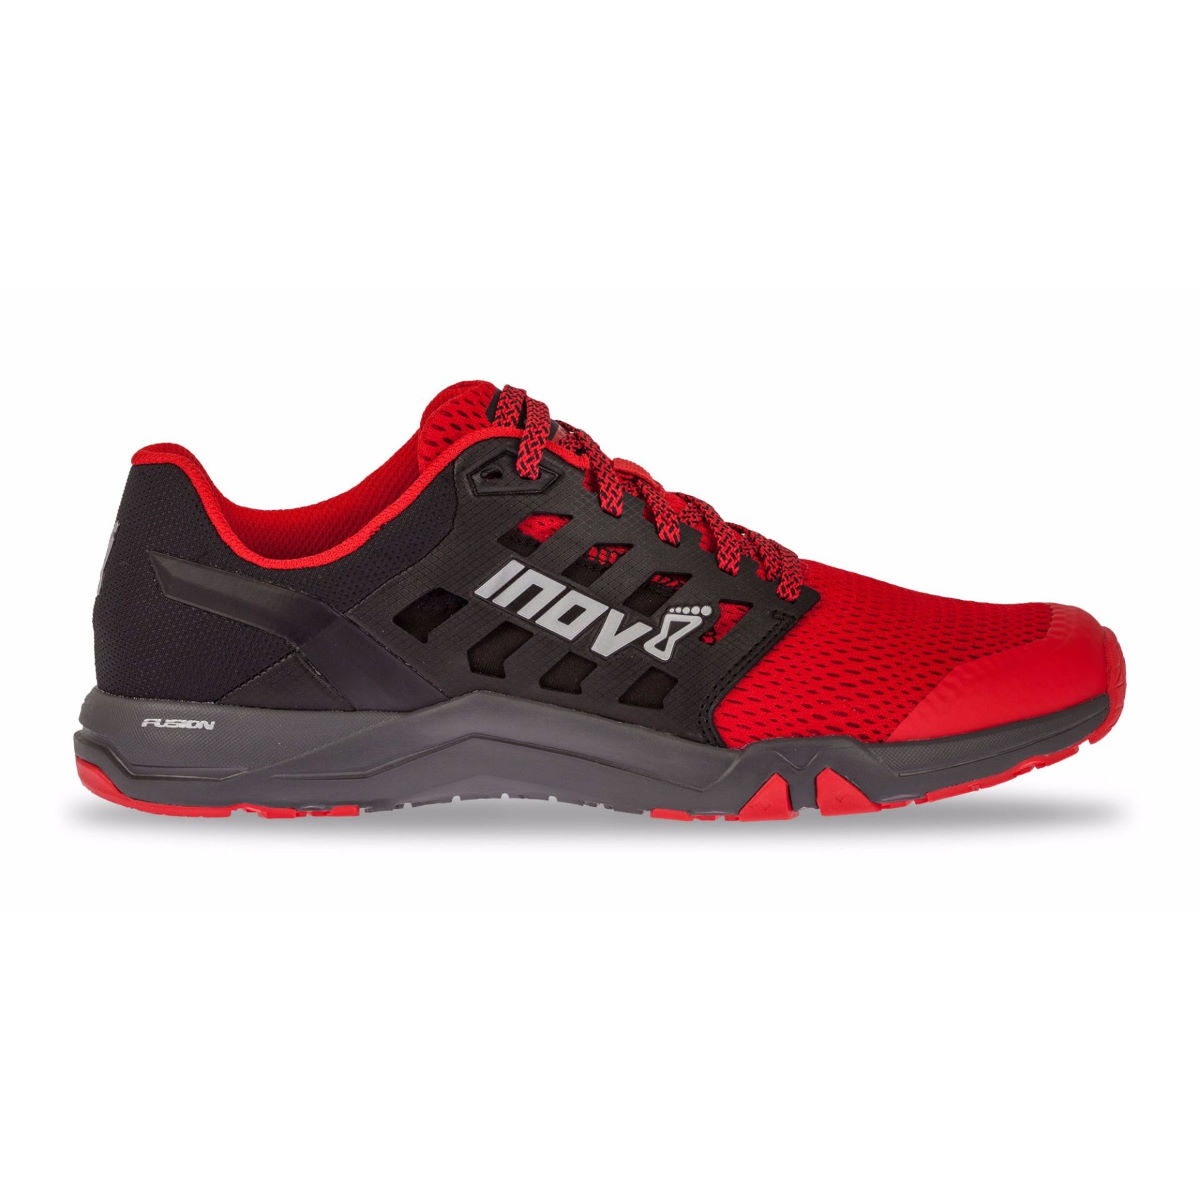 Chaussures Inov-8 All Train 215 - UK 7 RED/BLACK